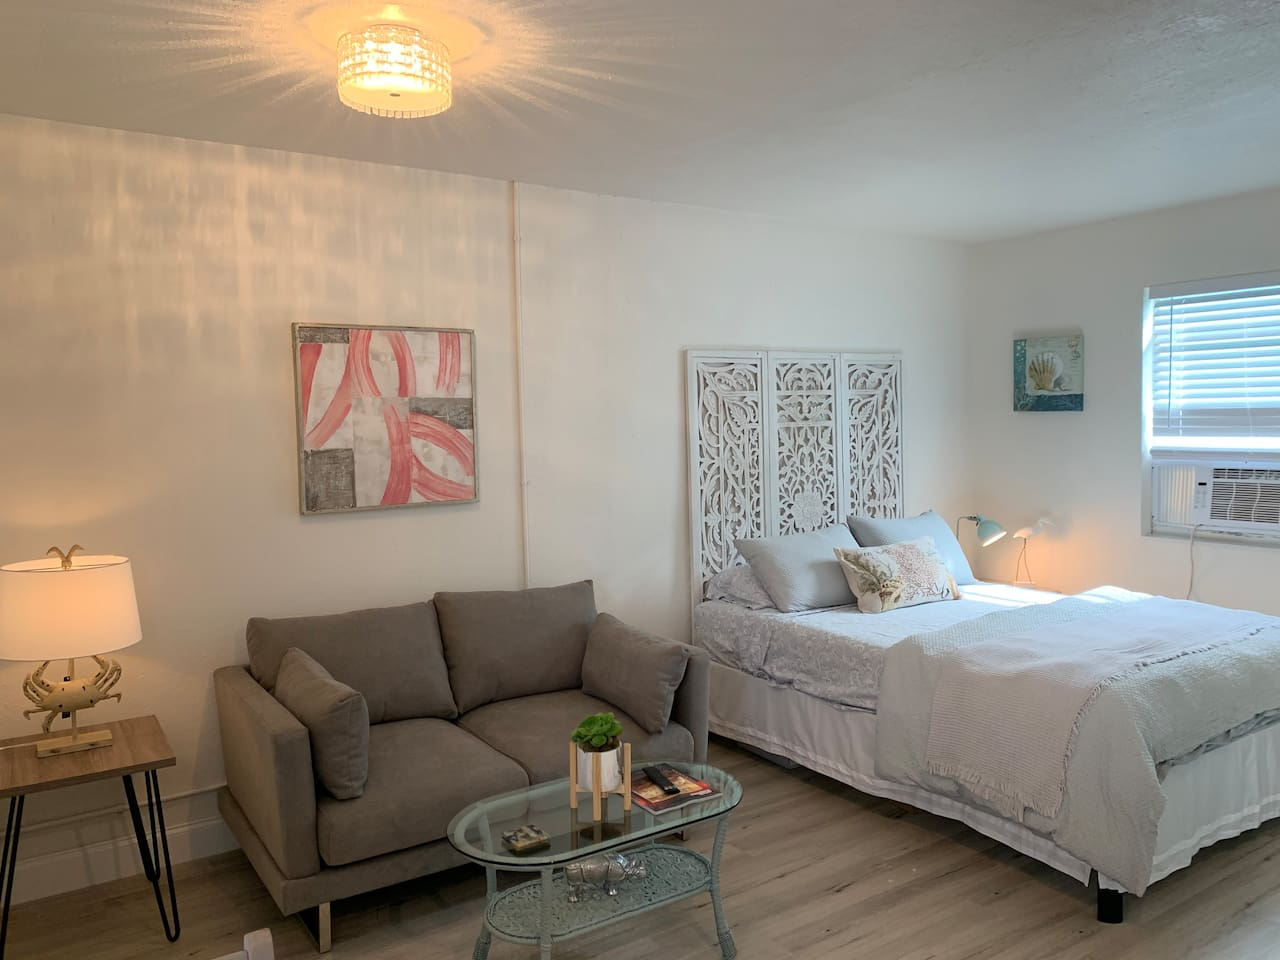 Completely updated studio apartment in downtown Lake Worth Beach!  Private entrance with easy to use keyless entry, and all the comforts of home in this private suite.  Walk out your front door to restaurants, cafes, breweries and the beach 1 mile!